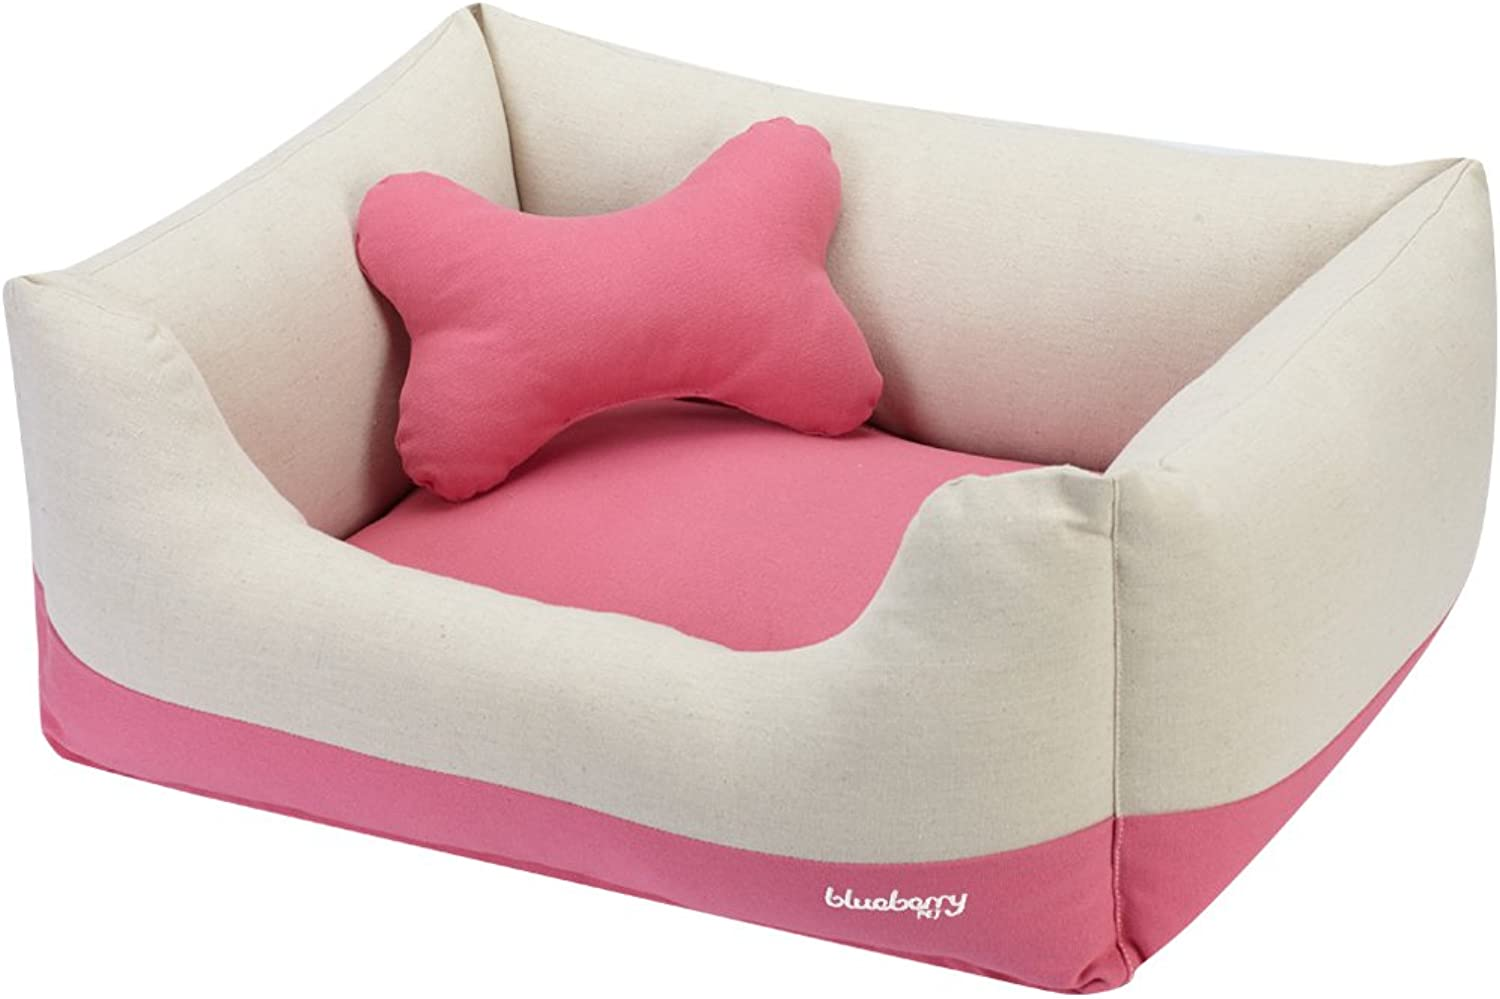 blueeberry Pet Heavy Duty Cotton Linen Blended Canvas Overstuffed Cuddler Bolster Lounge Dog Bed, Removable & Washable Cover w YKK Zippers, 25  x 21  x 10 , 6 lbs, Baby Pink & Beige colorBlock